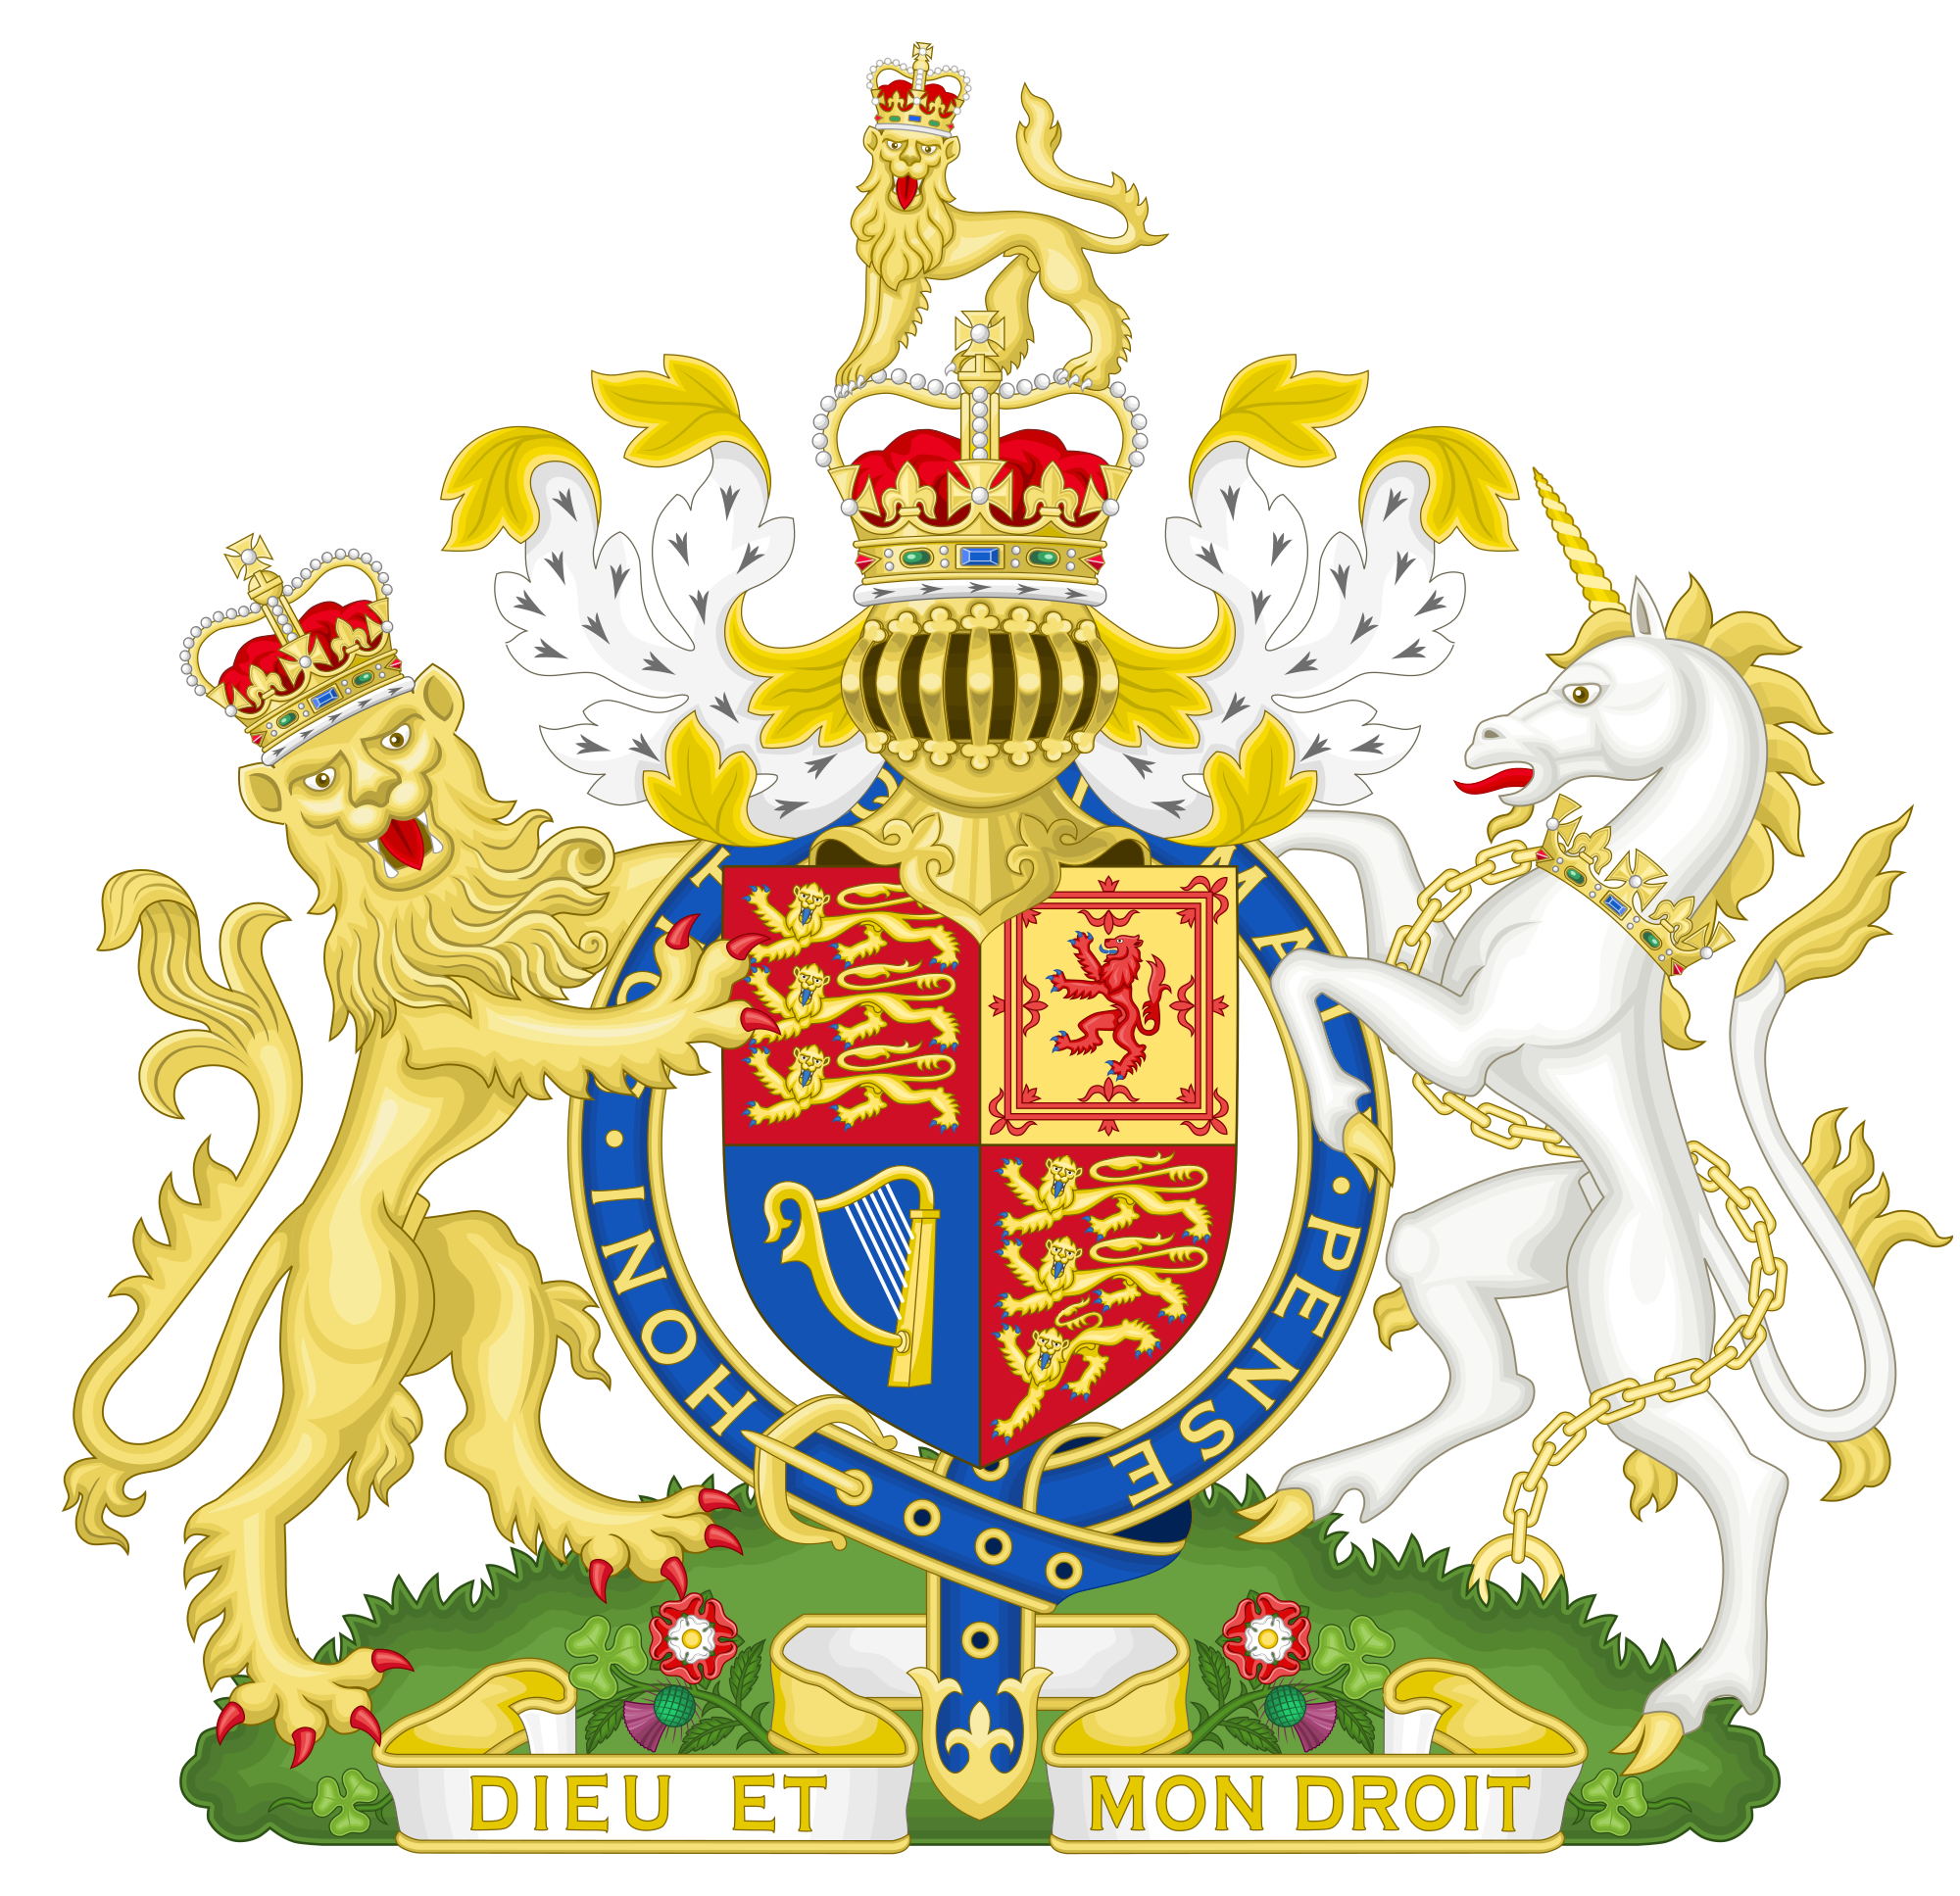 United kingdom government clipart clip art download Royal coat of arms of the United Kingdom - Wikipedia clip art download